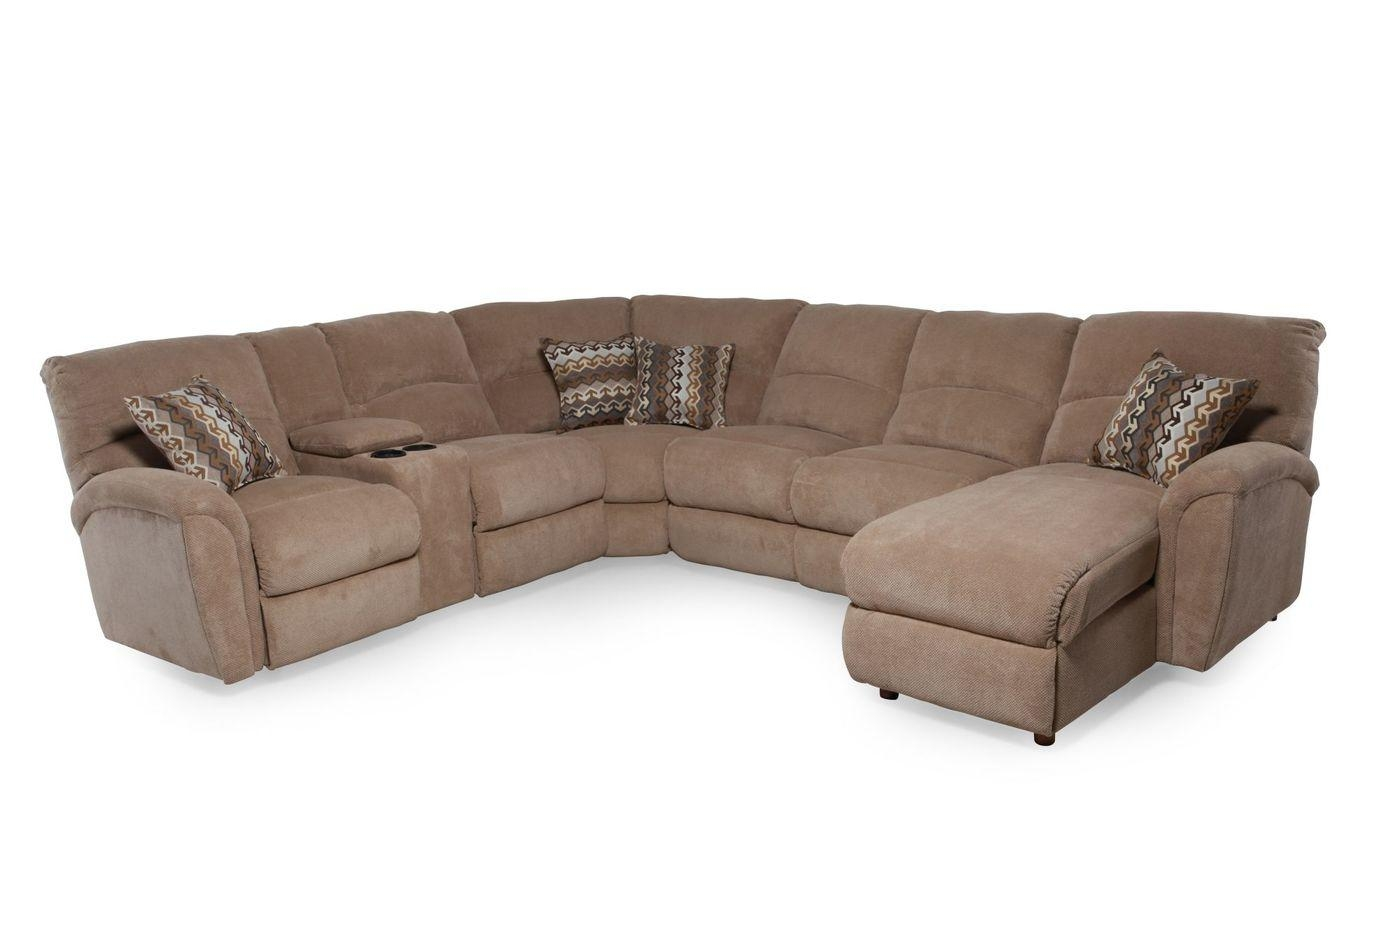 Luxury Sectional Sofas Okc 76 On Slumberland Sofa Sleepers With With Regard To Slumberland Sofas (View 12 of 20)